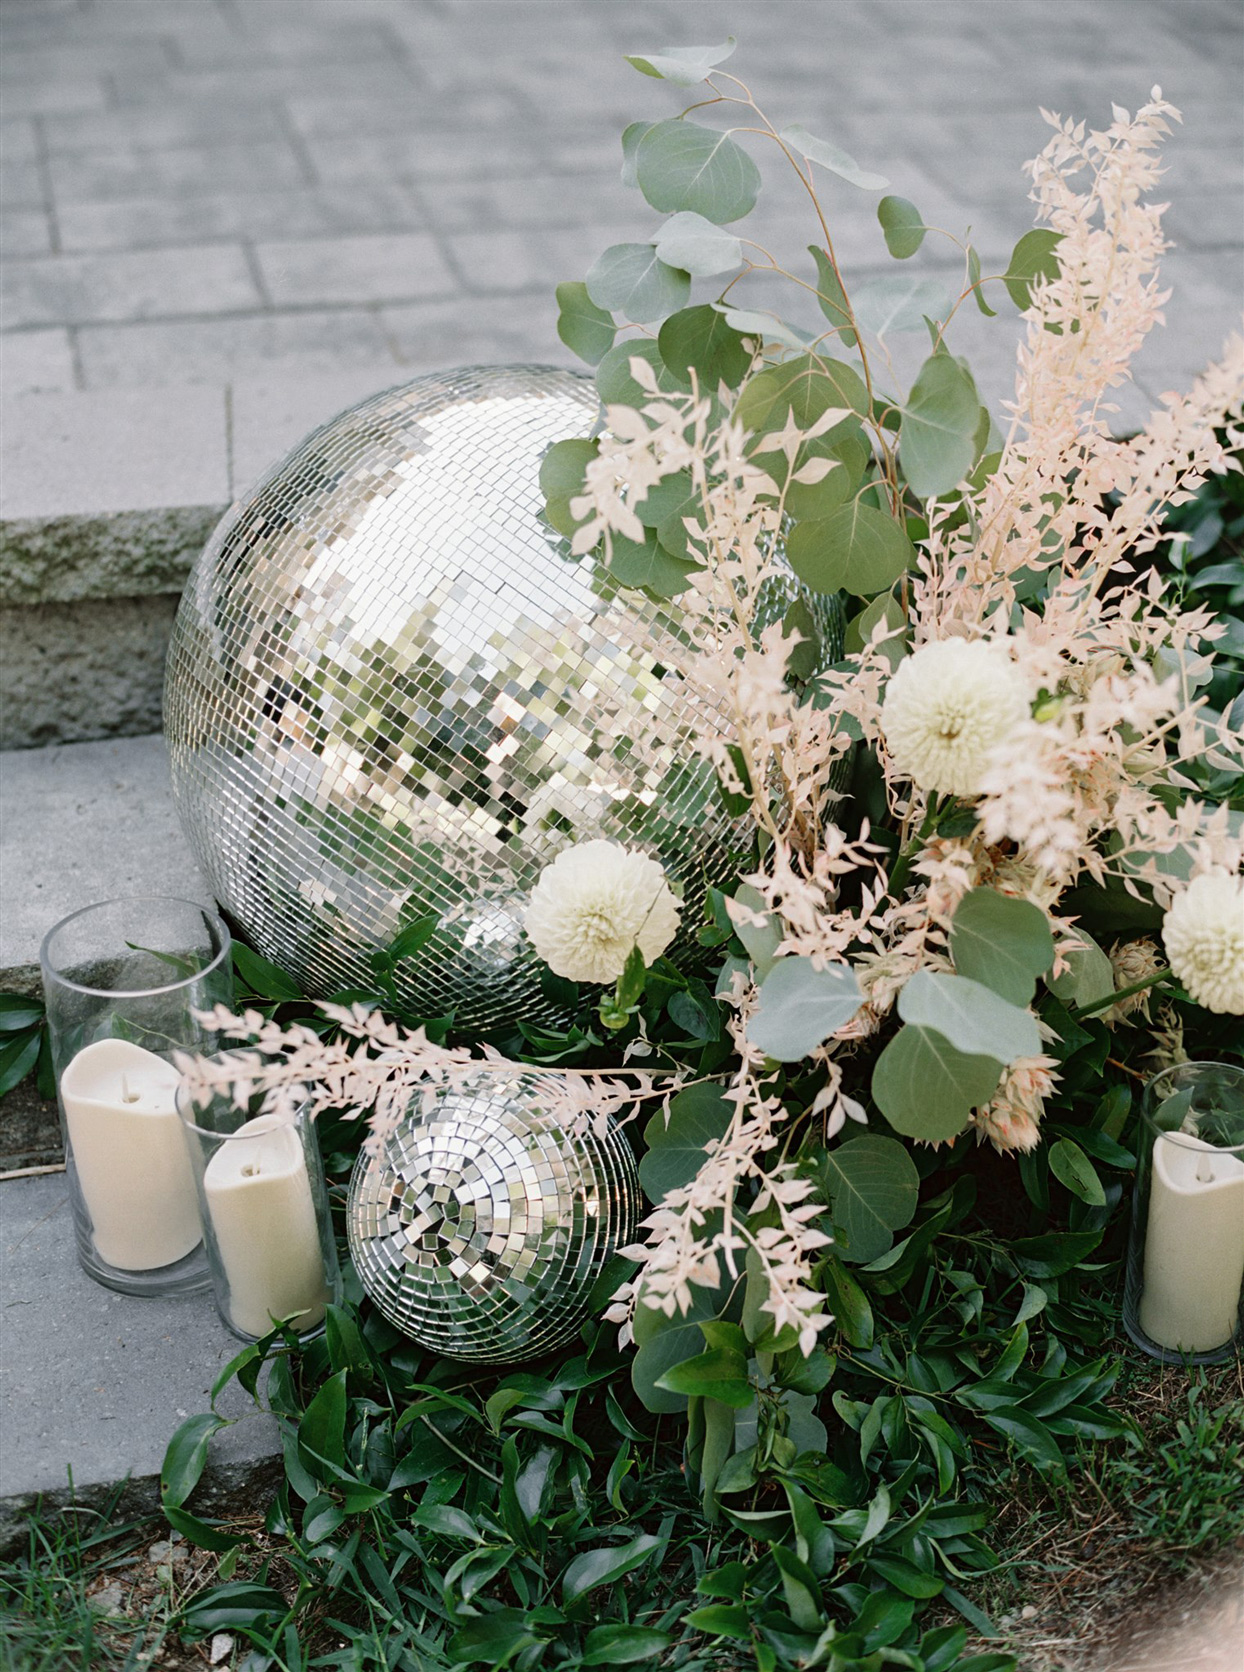 Disco ball surrounded by candles and greenery